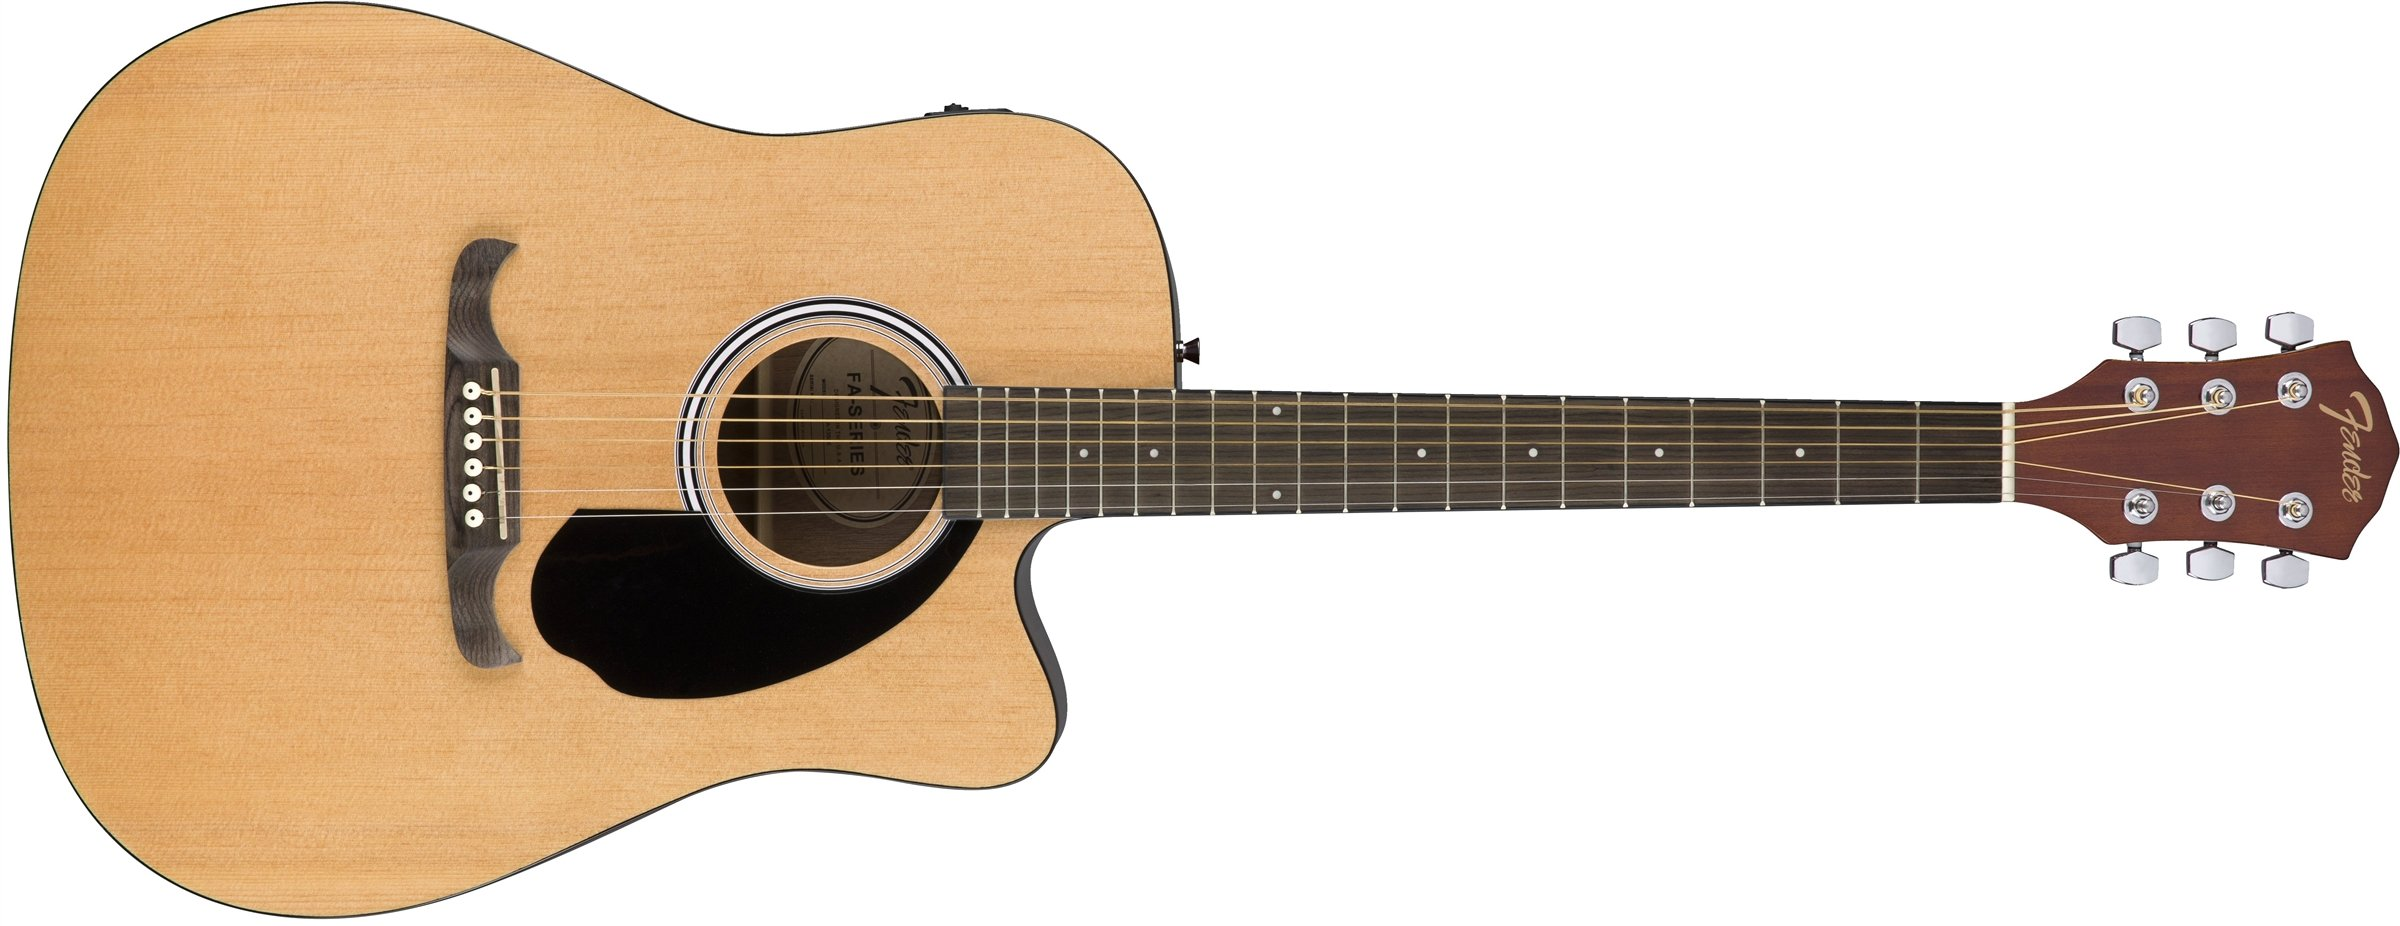 Fender FA-125CE Dreadnought Acoustic Guitar, Natural Finish by Fender